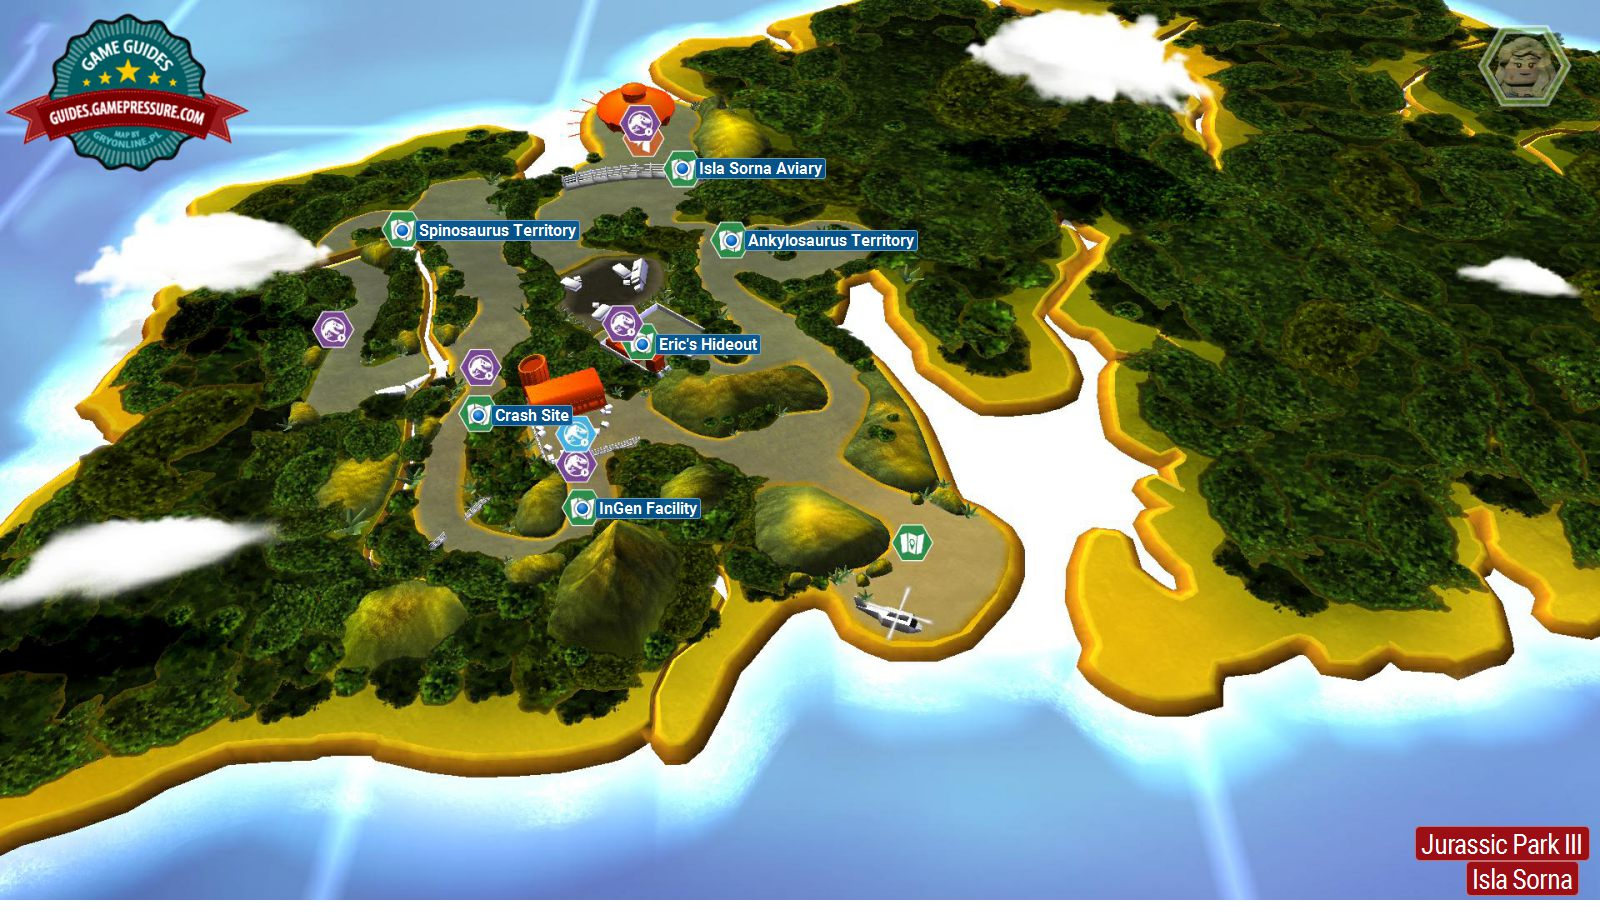 Introduction and map jurassic park iii secrets in free roam lego jurassic world jurassic park iii gumiabroncs Gallery